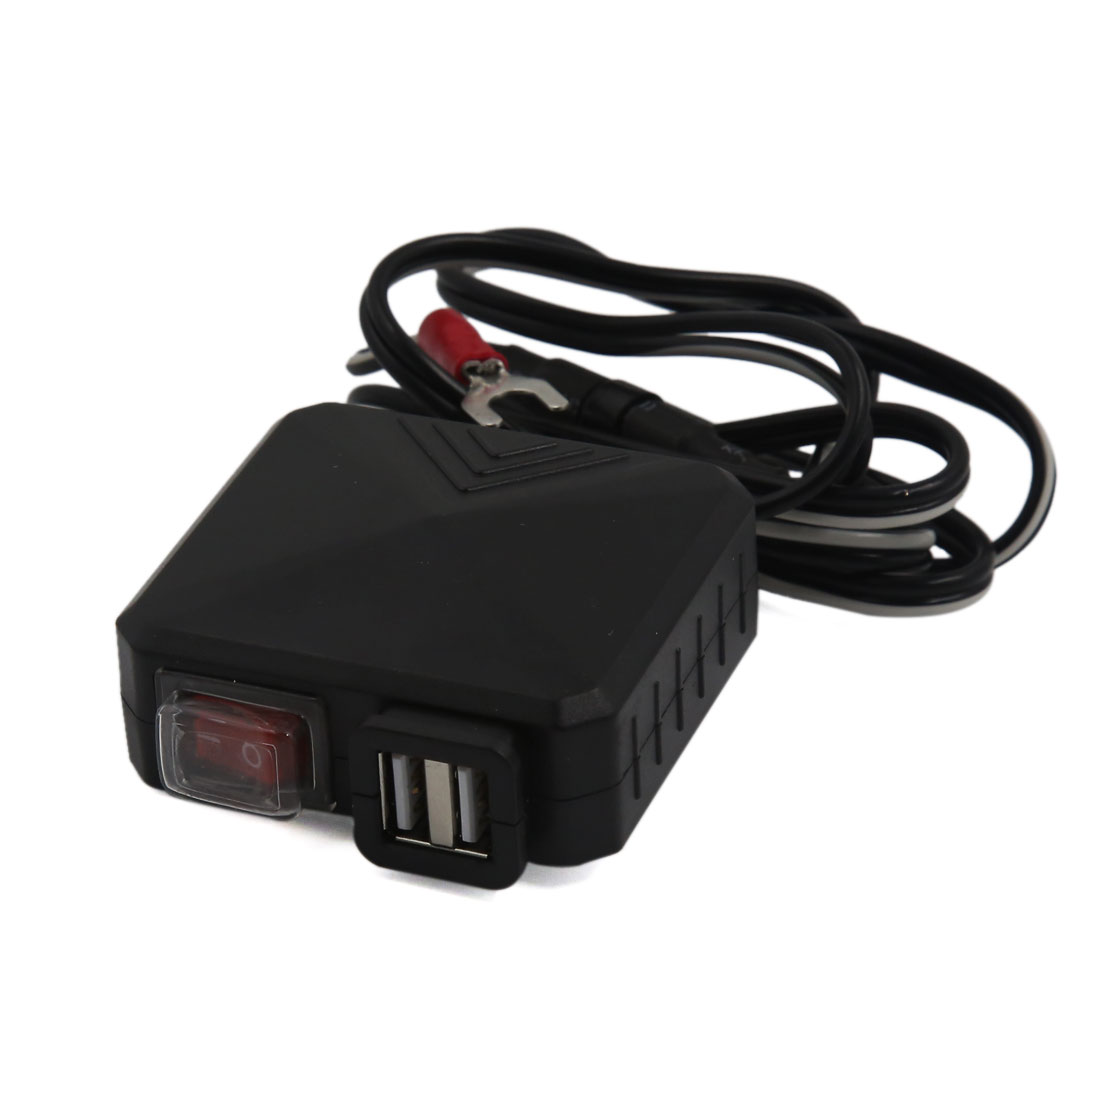 Double USB Socket Cigarette Lighter Charger Adapter for Vehicle Motorcycle